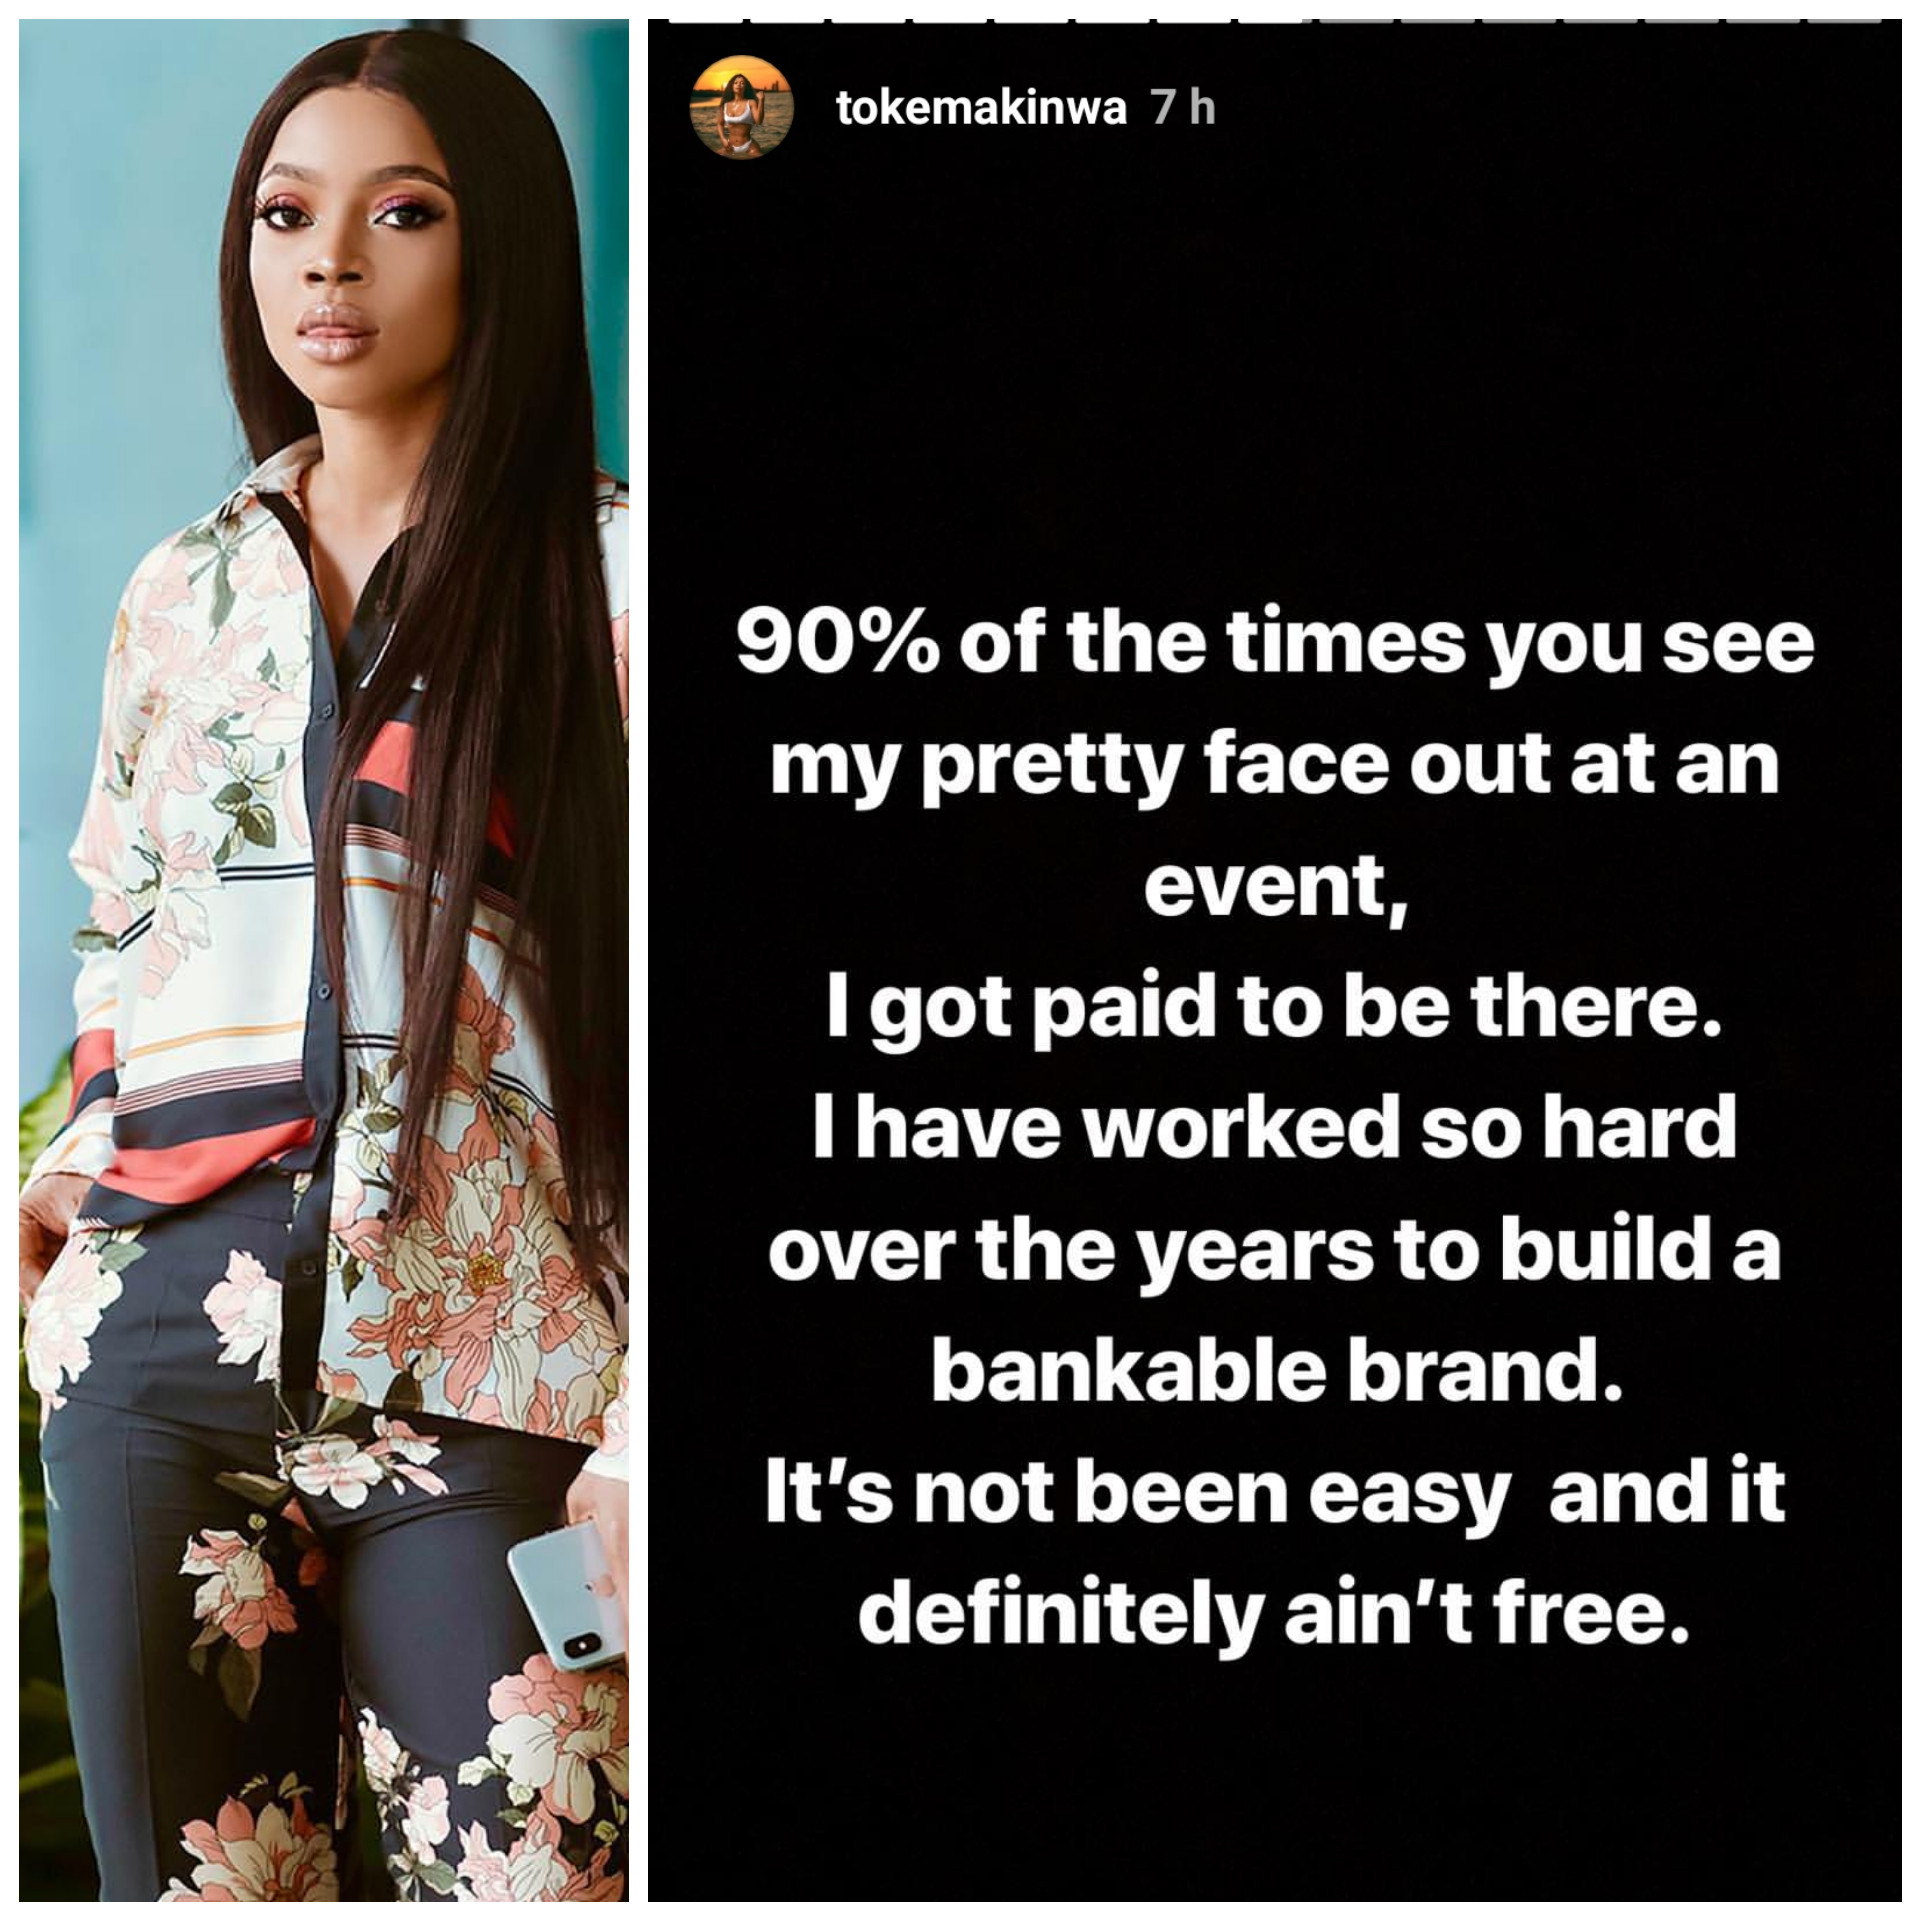 I get paid to take my pretty face to events - Toke Makinwa